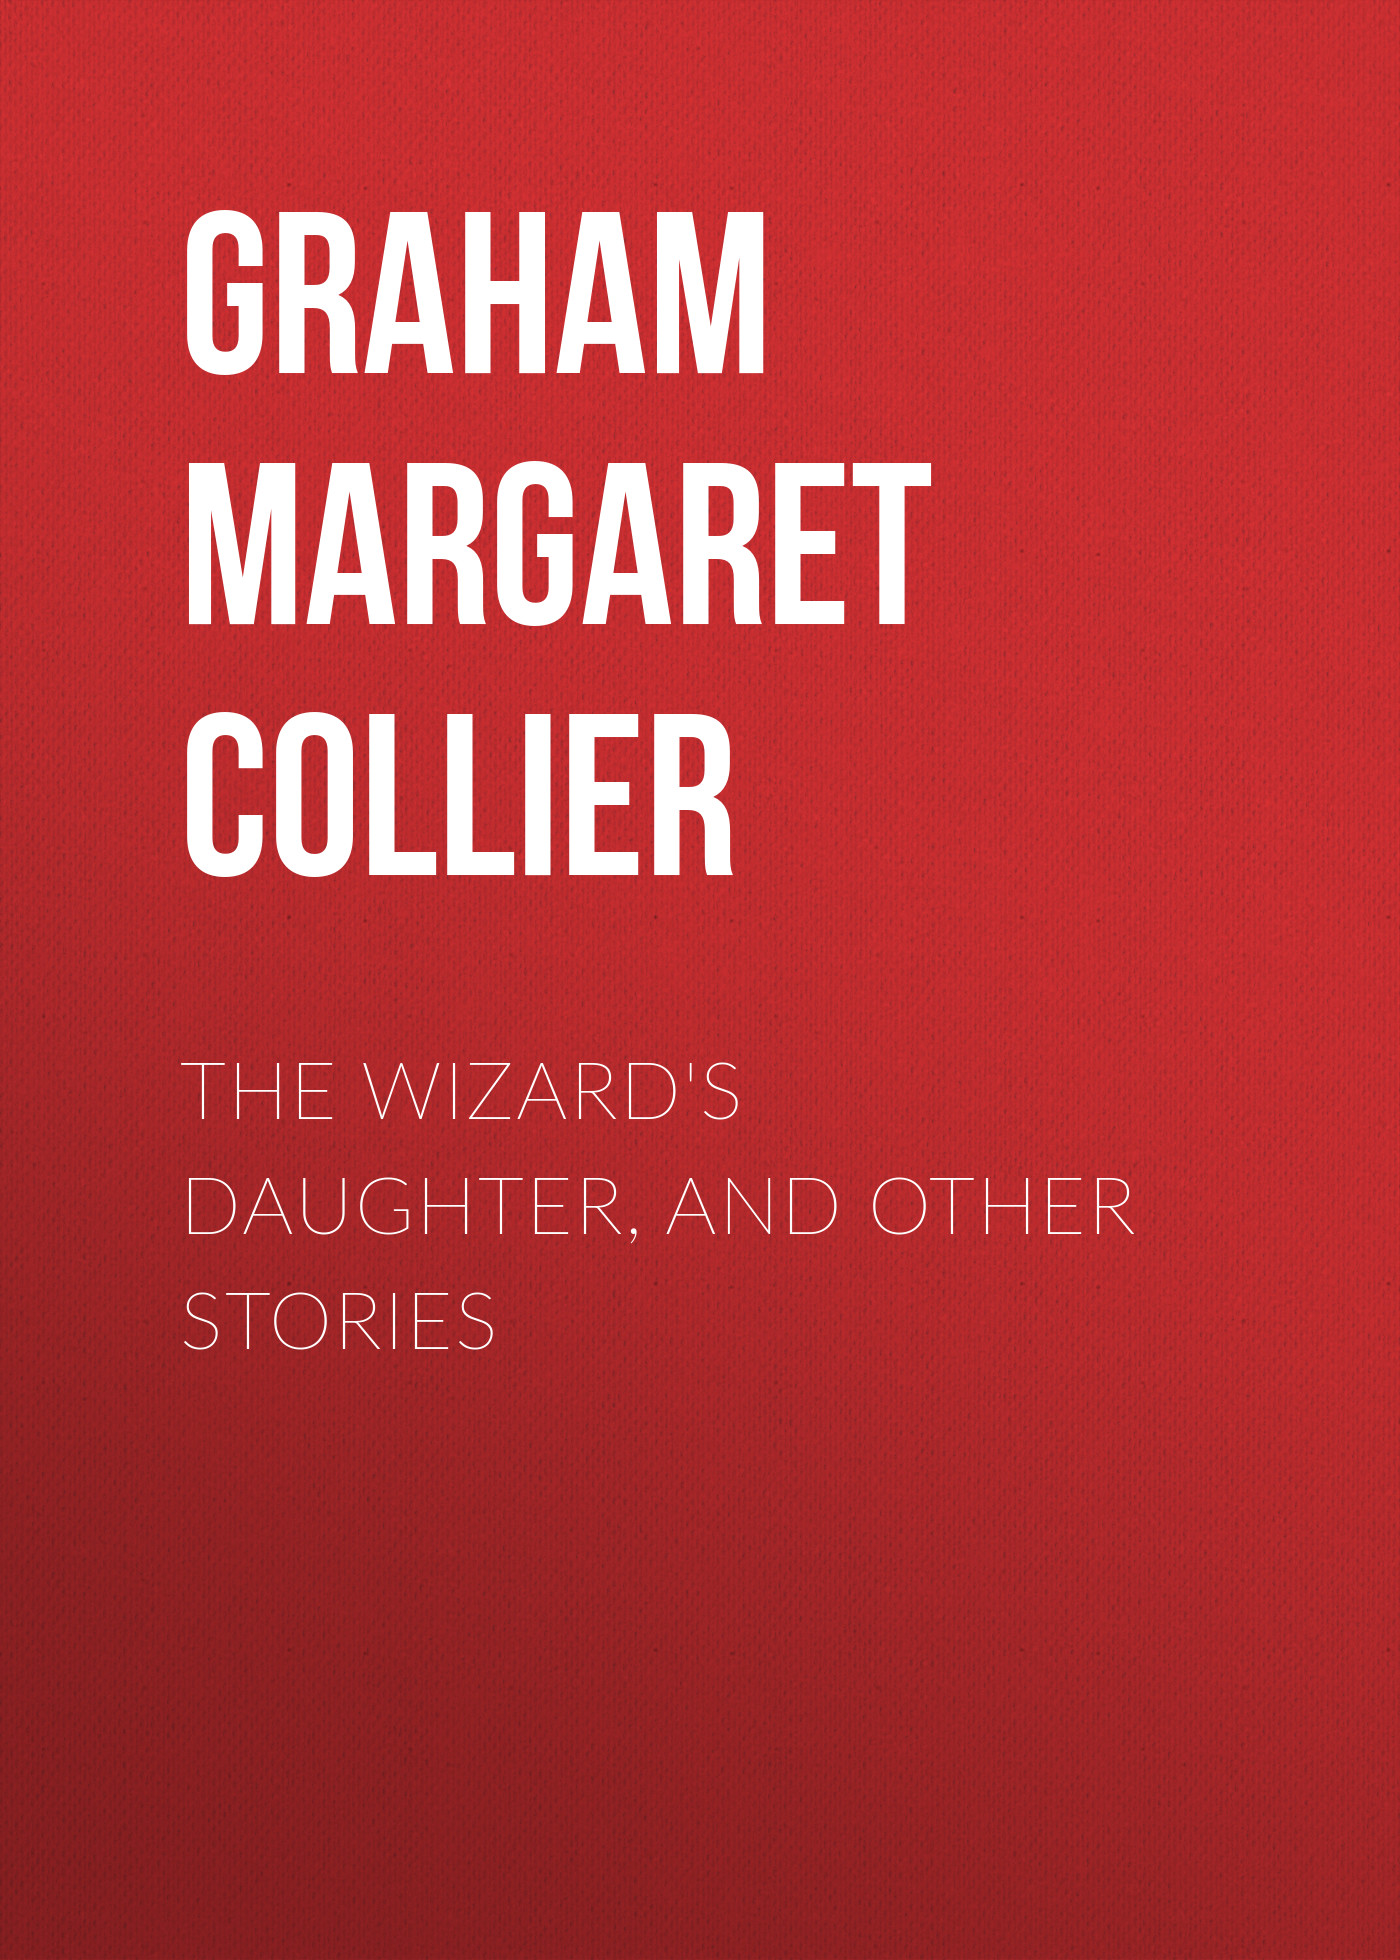 Graham Margaret Collier The Wizard's Daughter, and Other Stories margaret atwood presents stories by canada s best new women writers